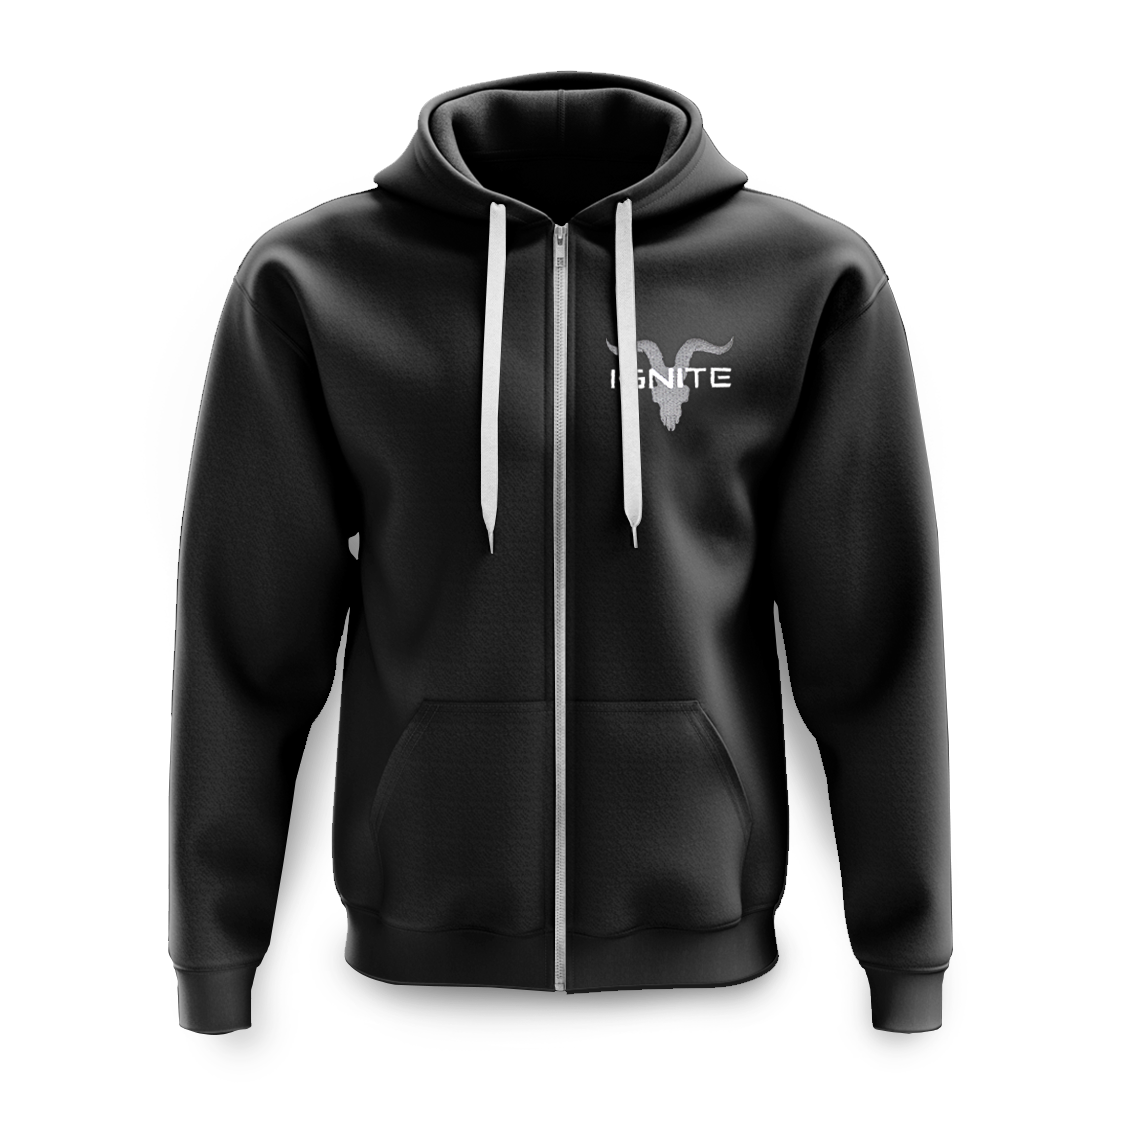 Ignite Premium Collection Unisex Black Zip Up With Grey Logo Fleece Hoodie